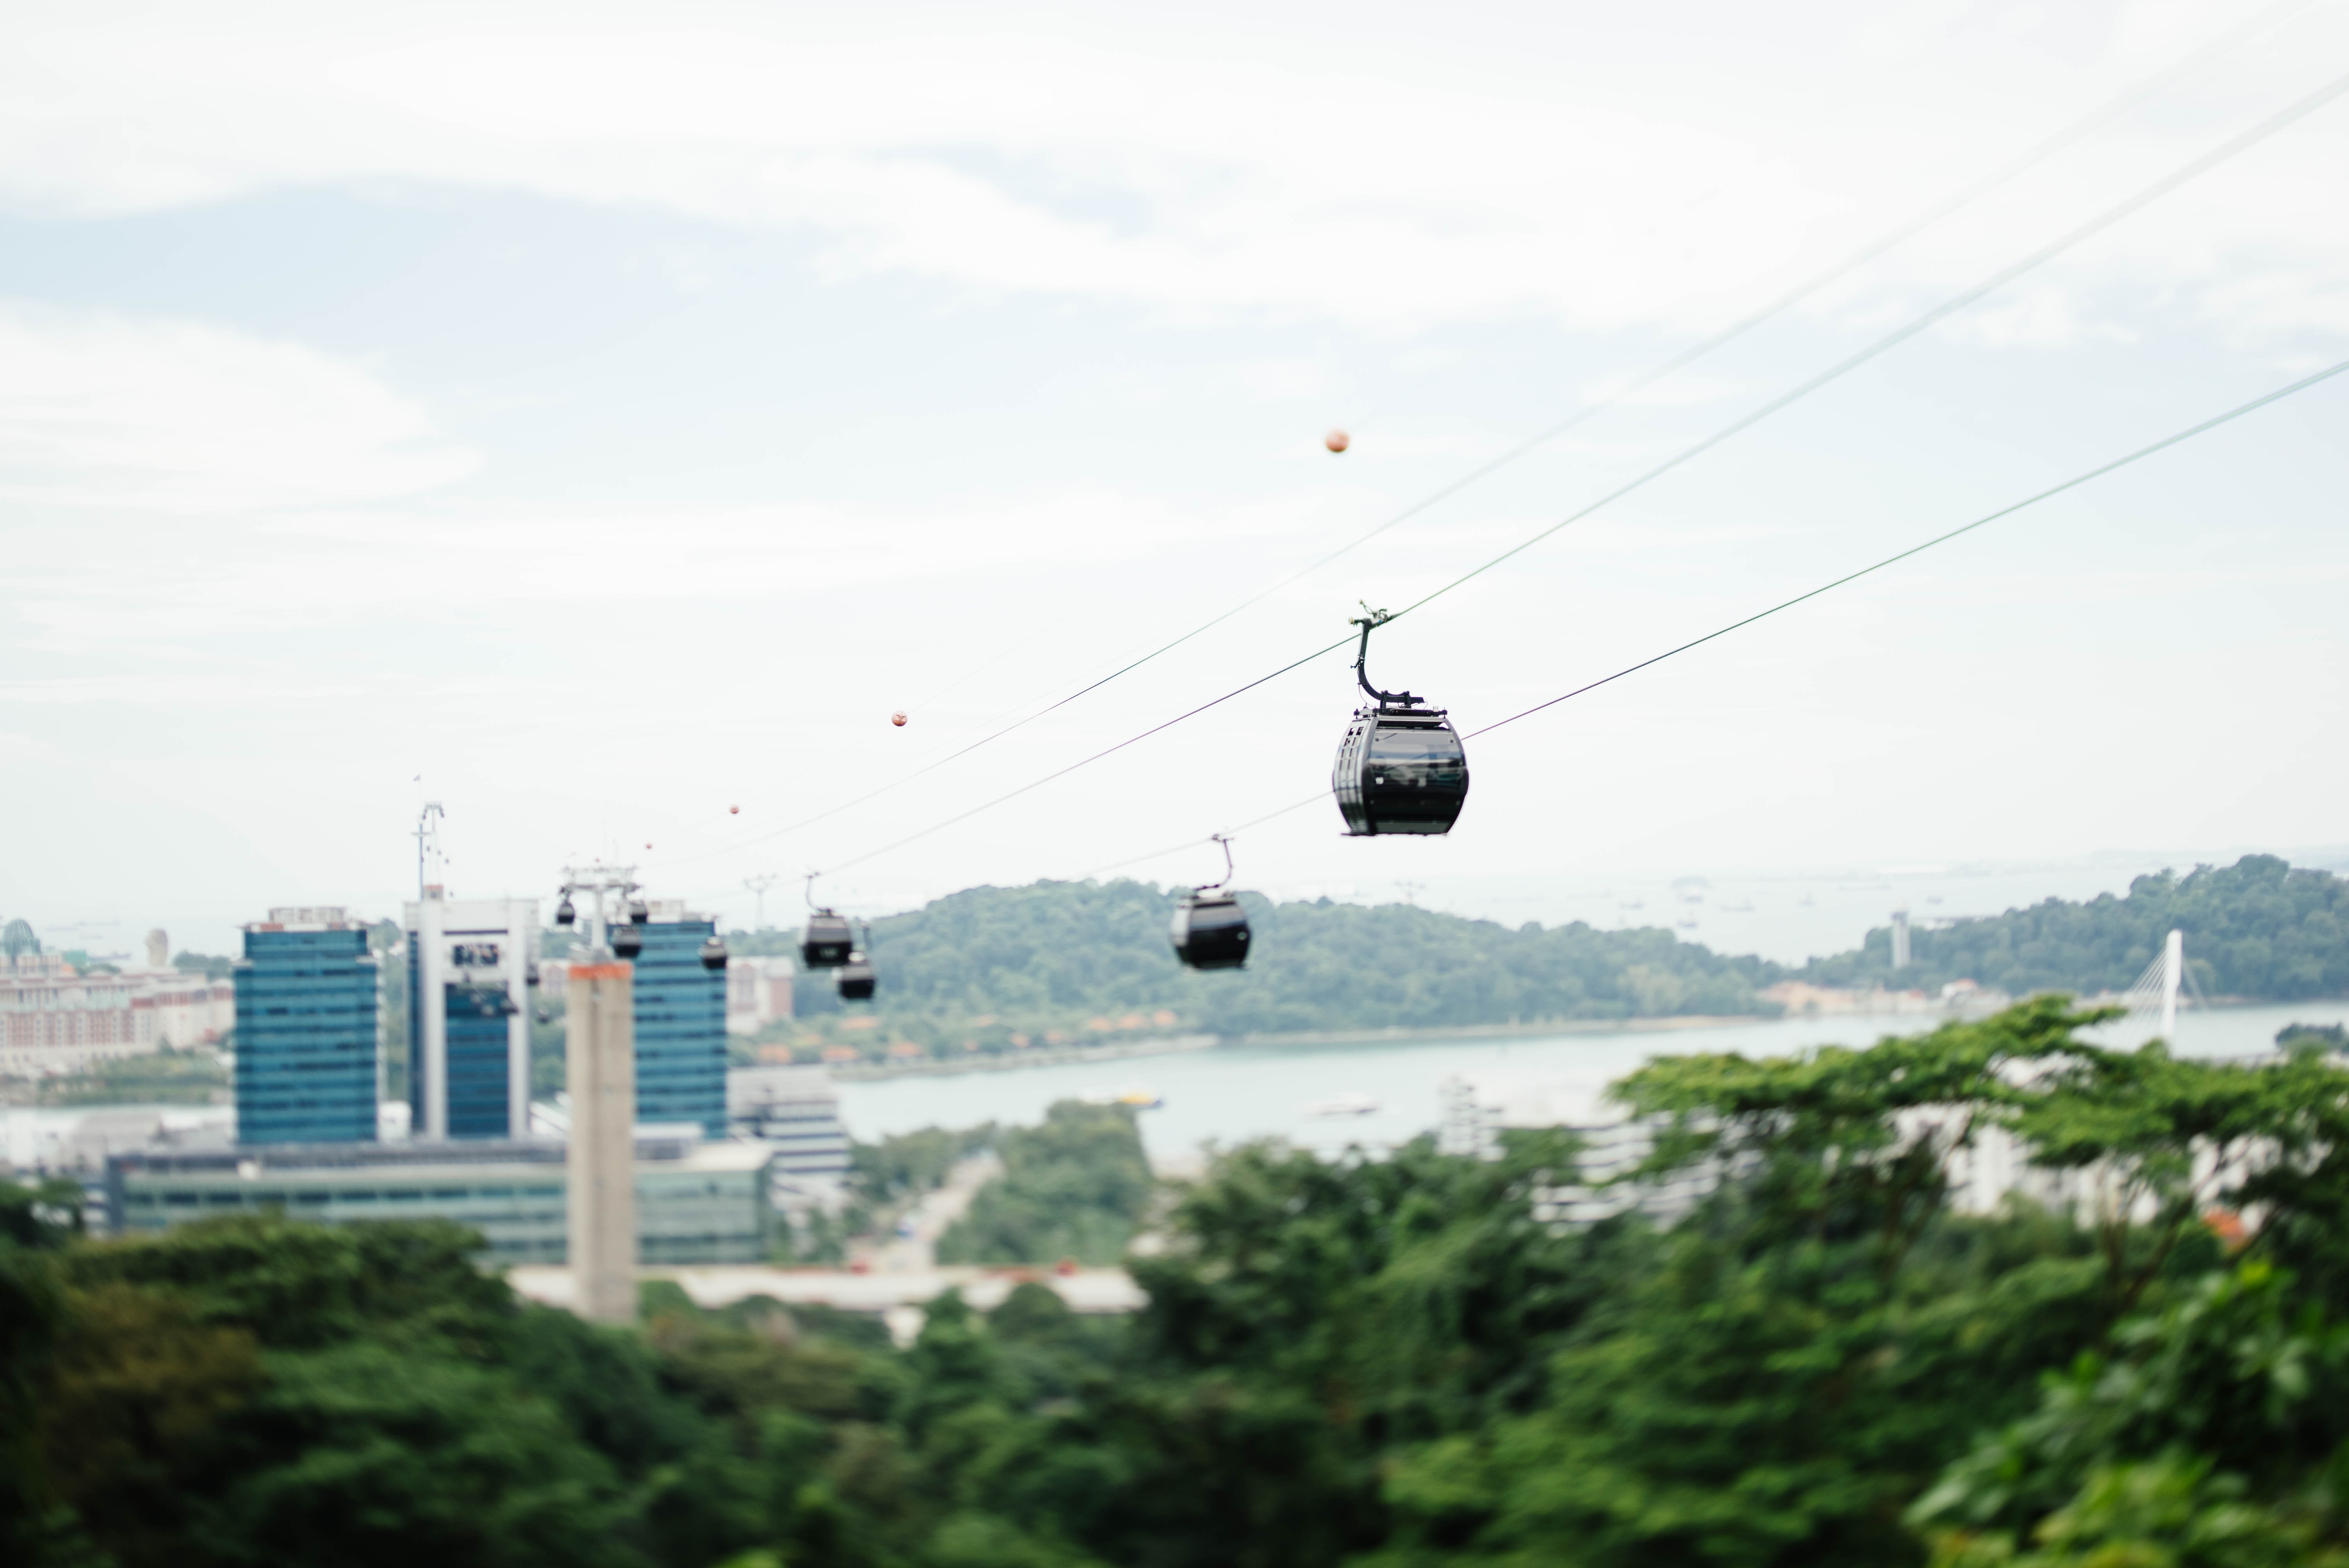 Cable cars transport commuters over lush green foliage in the city